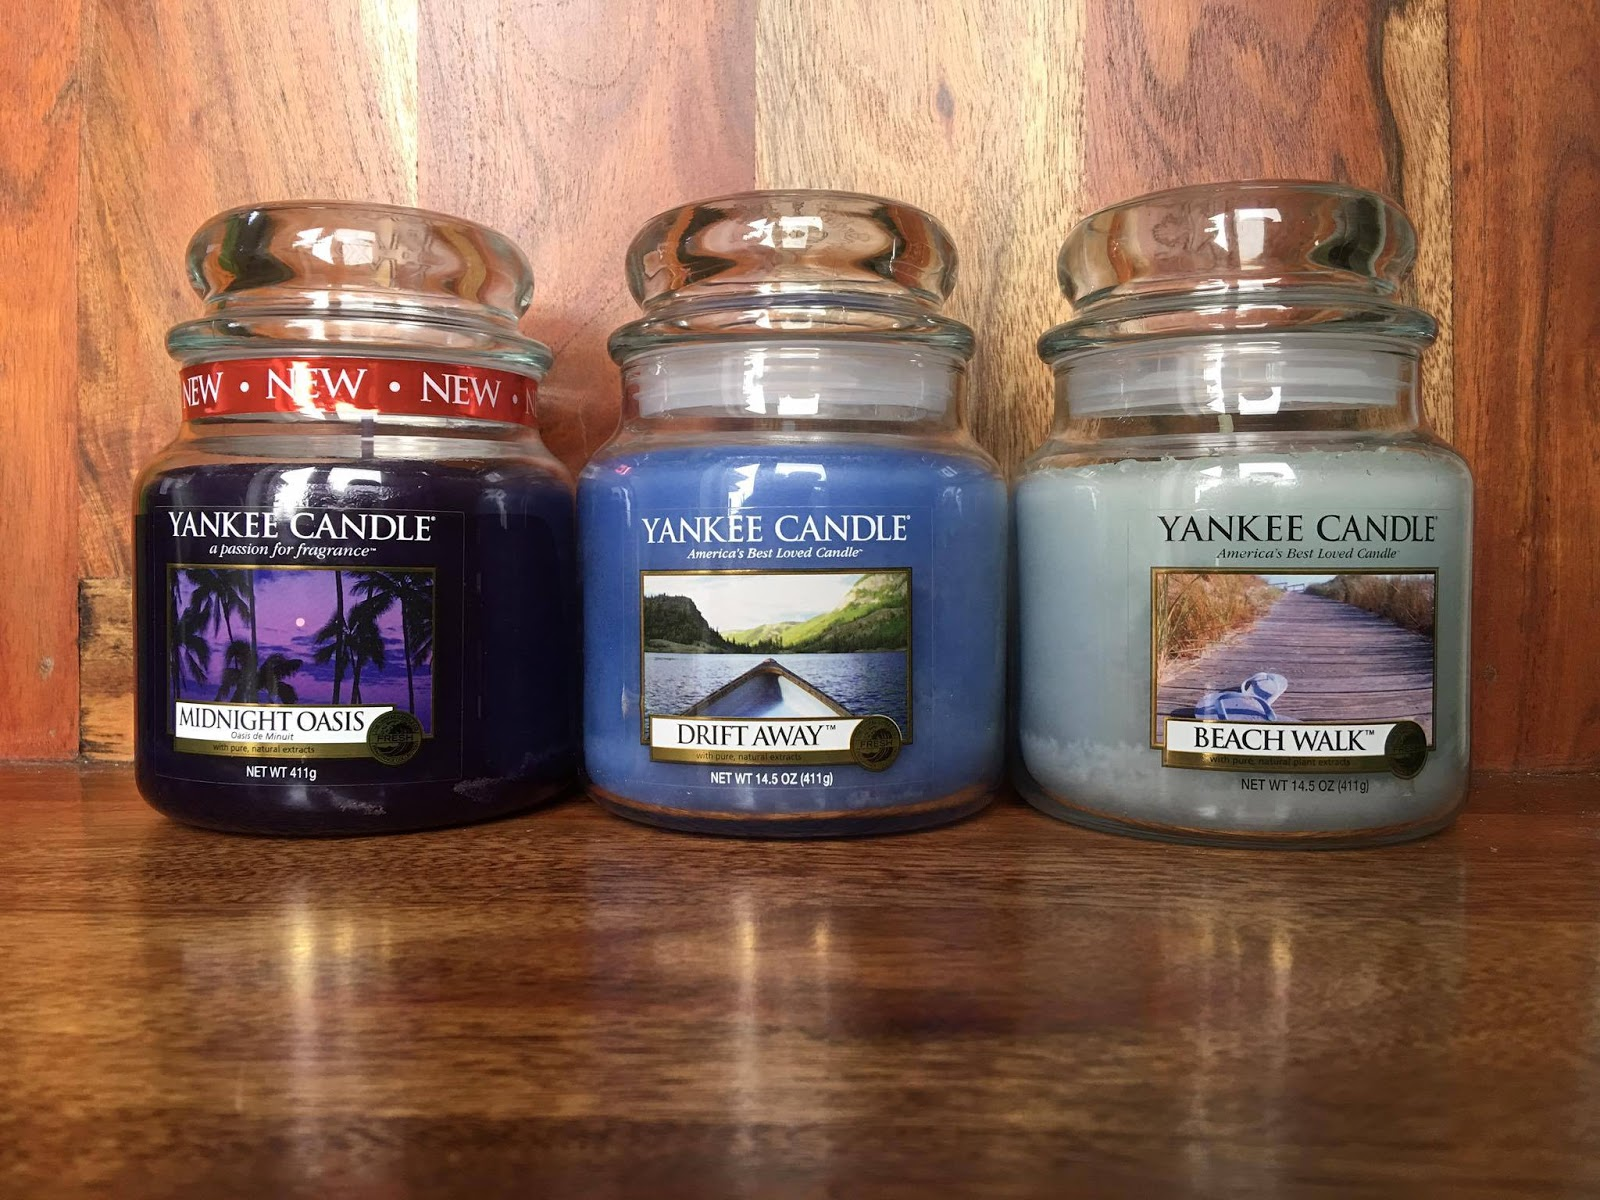 It's all about Yankee Candle. : YANKEE CANDLE 2015 ...